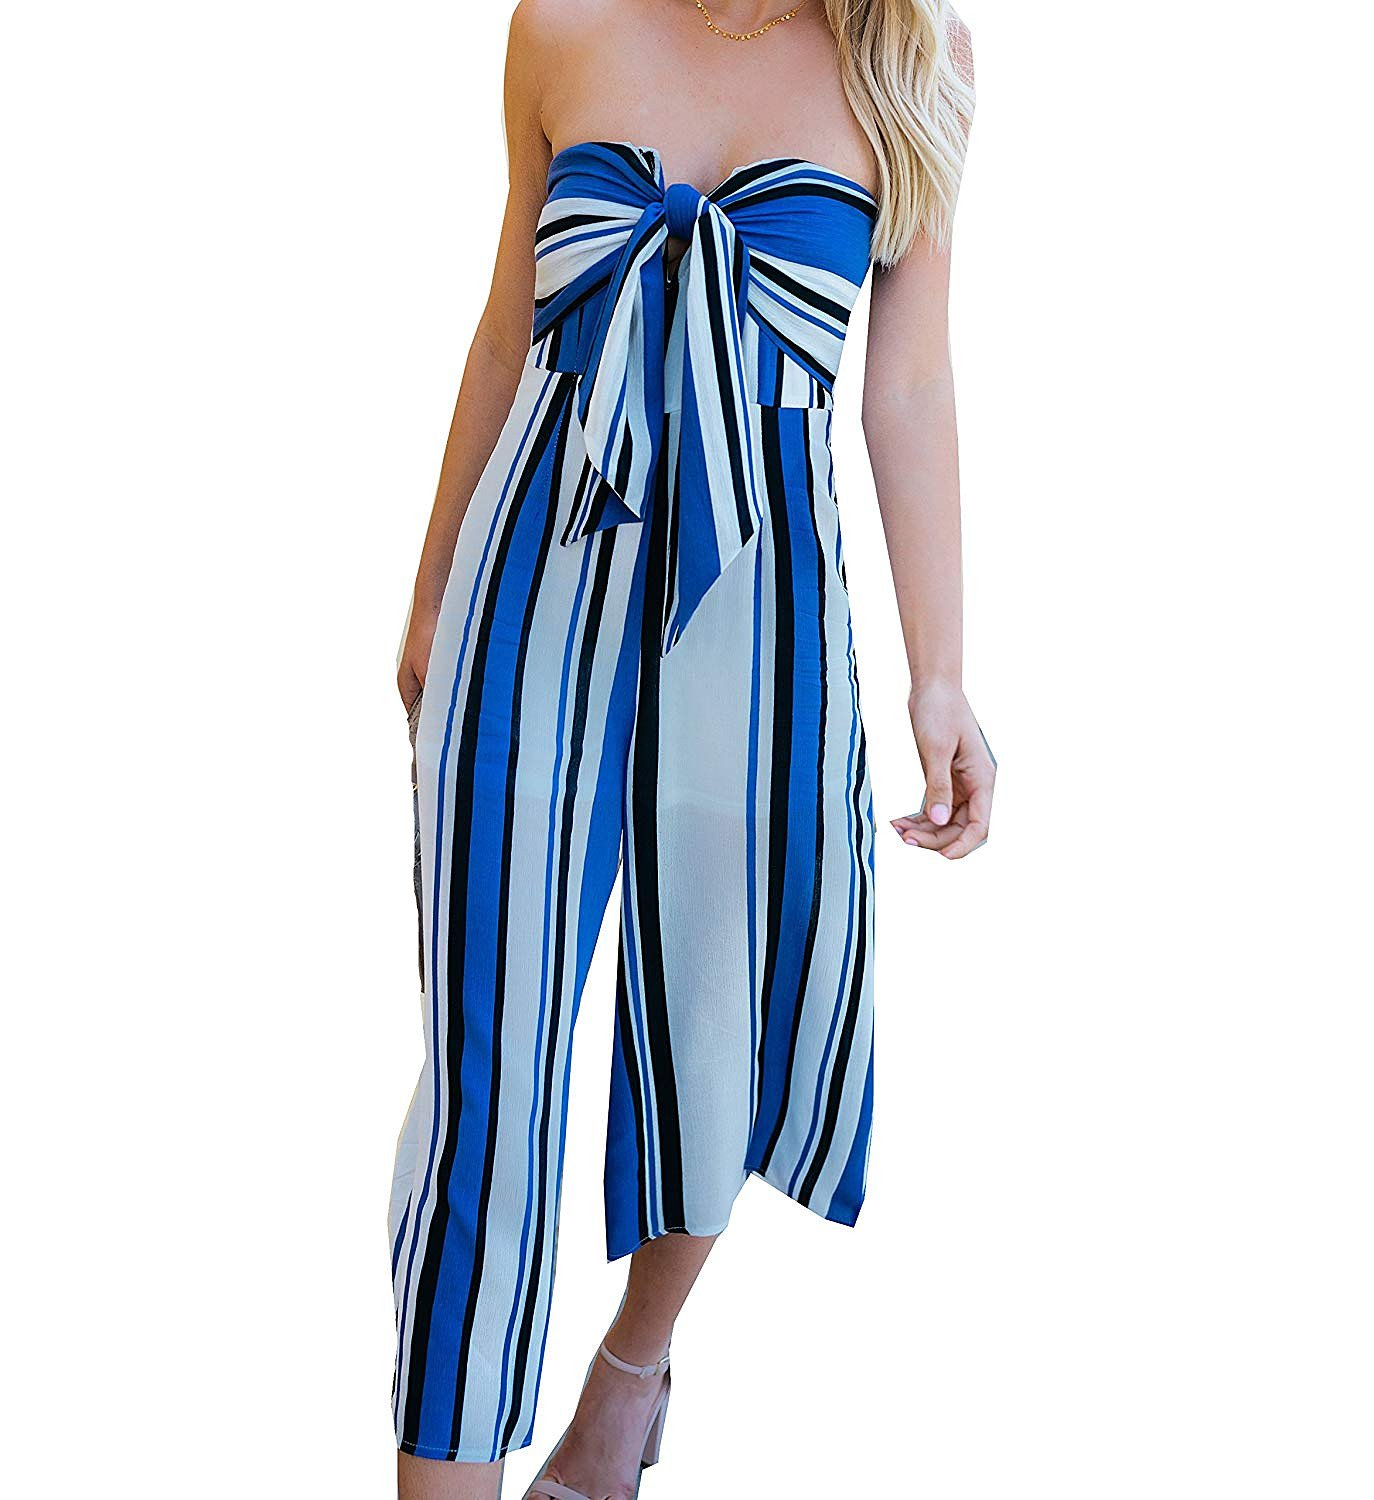 Women Jumpsuit, L'ananas 2018 Off Shoulder Sleeveless Stripe Bowknot Chest Wrap Wide Legs Long Rompers Overalls (CN-XL/US-10, Blue)